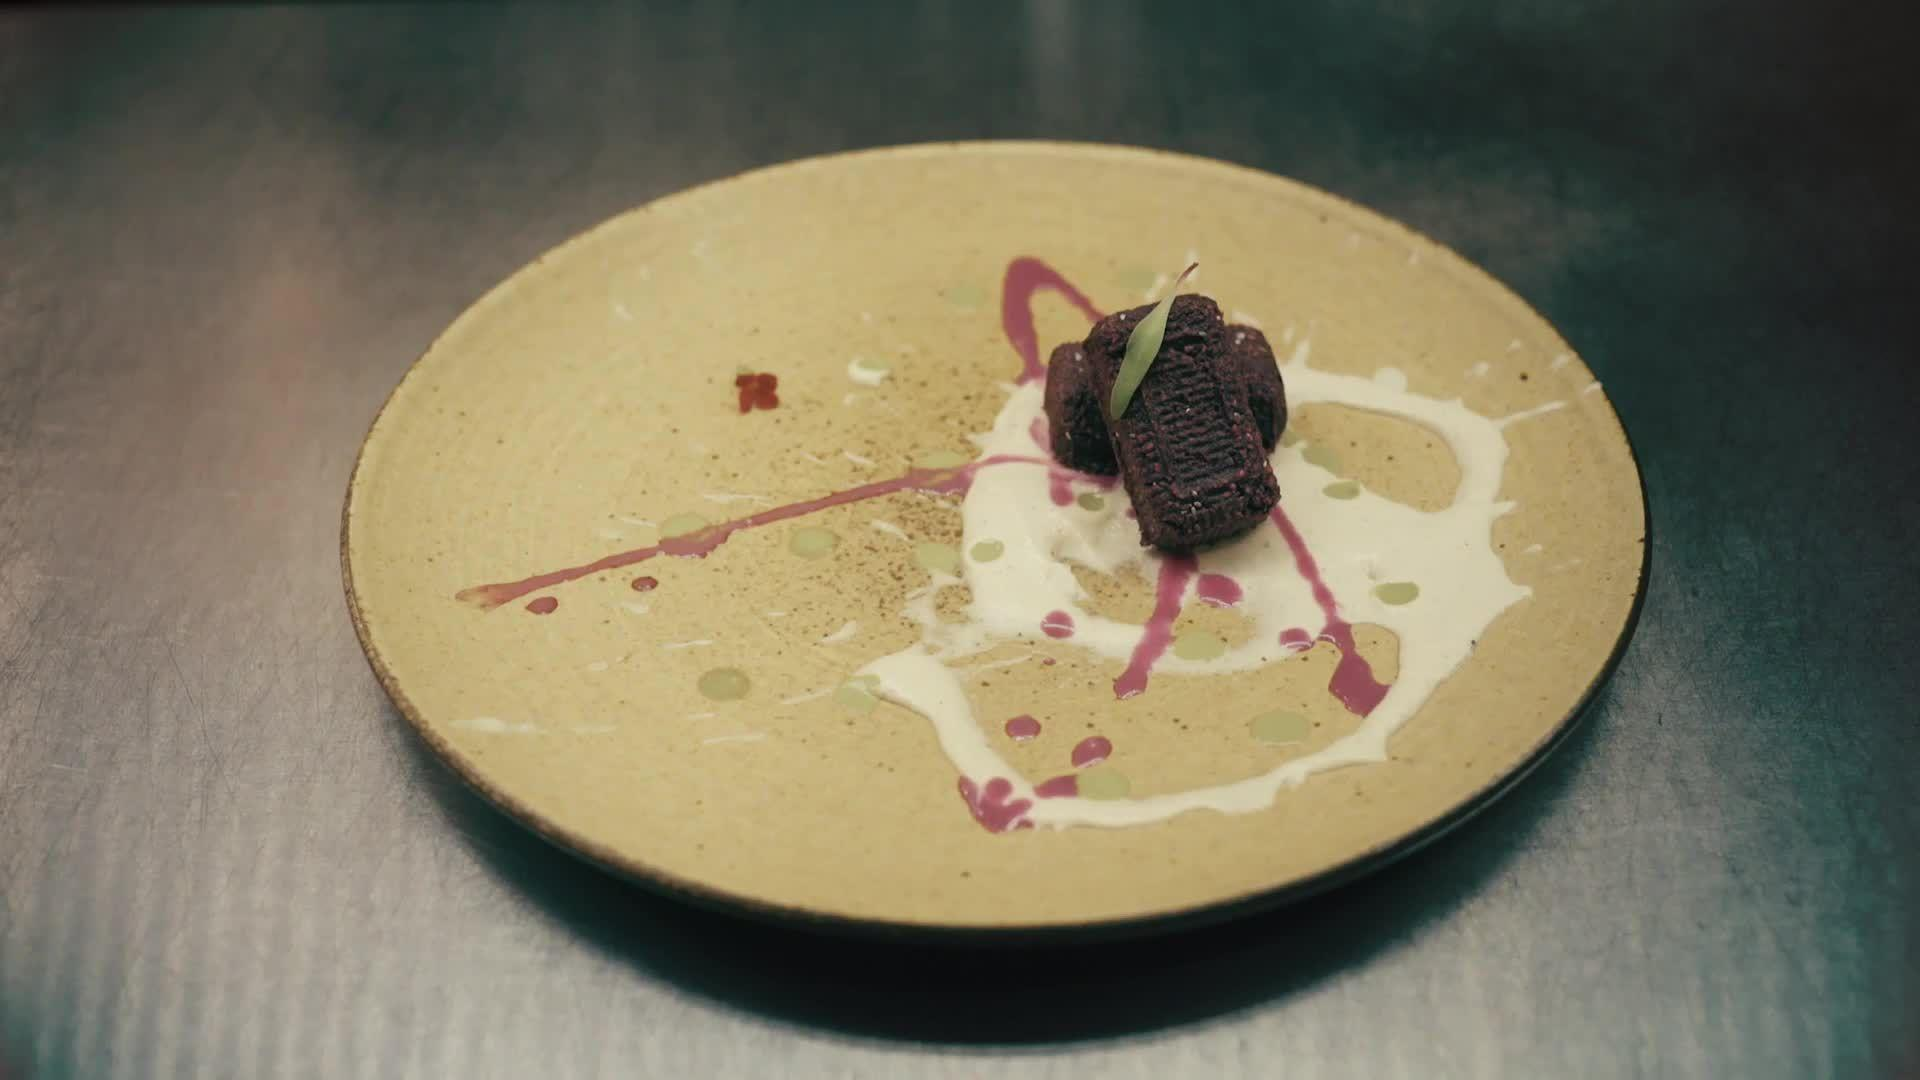 Ró Restaurant Makes Raw Food an Art